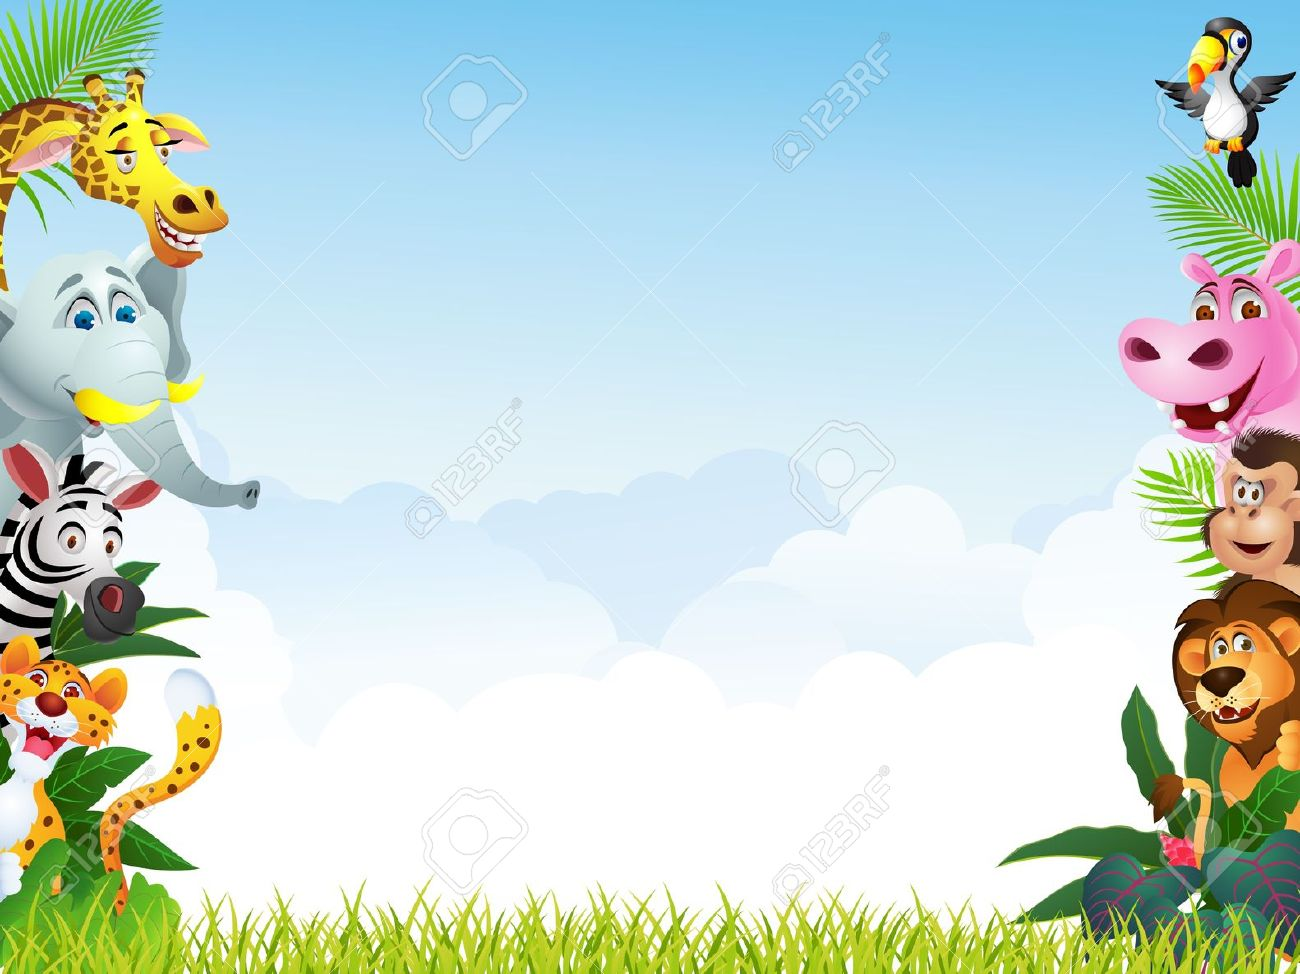 Backgrond clipart.